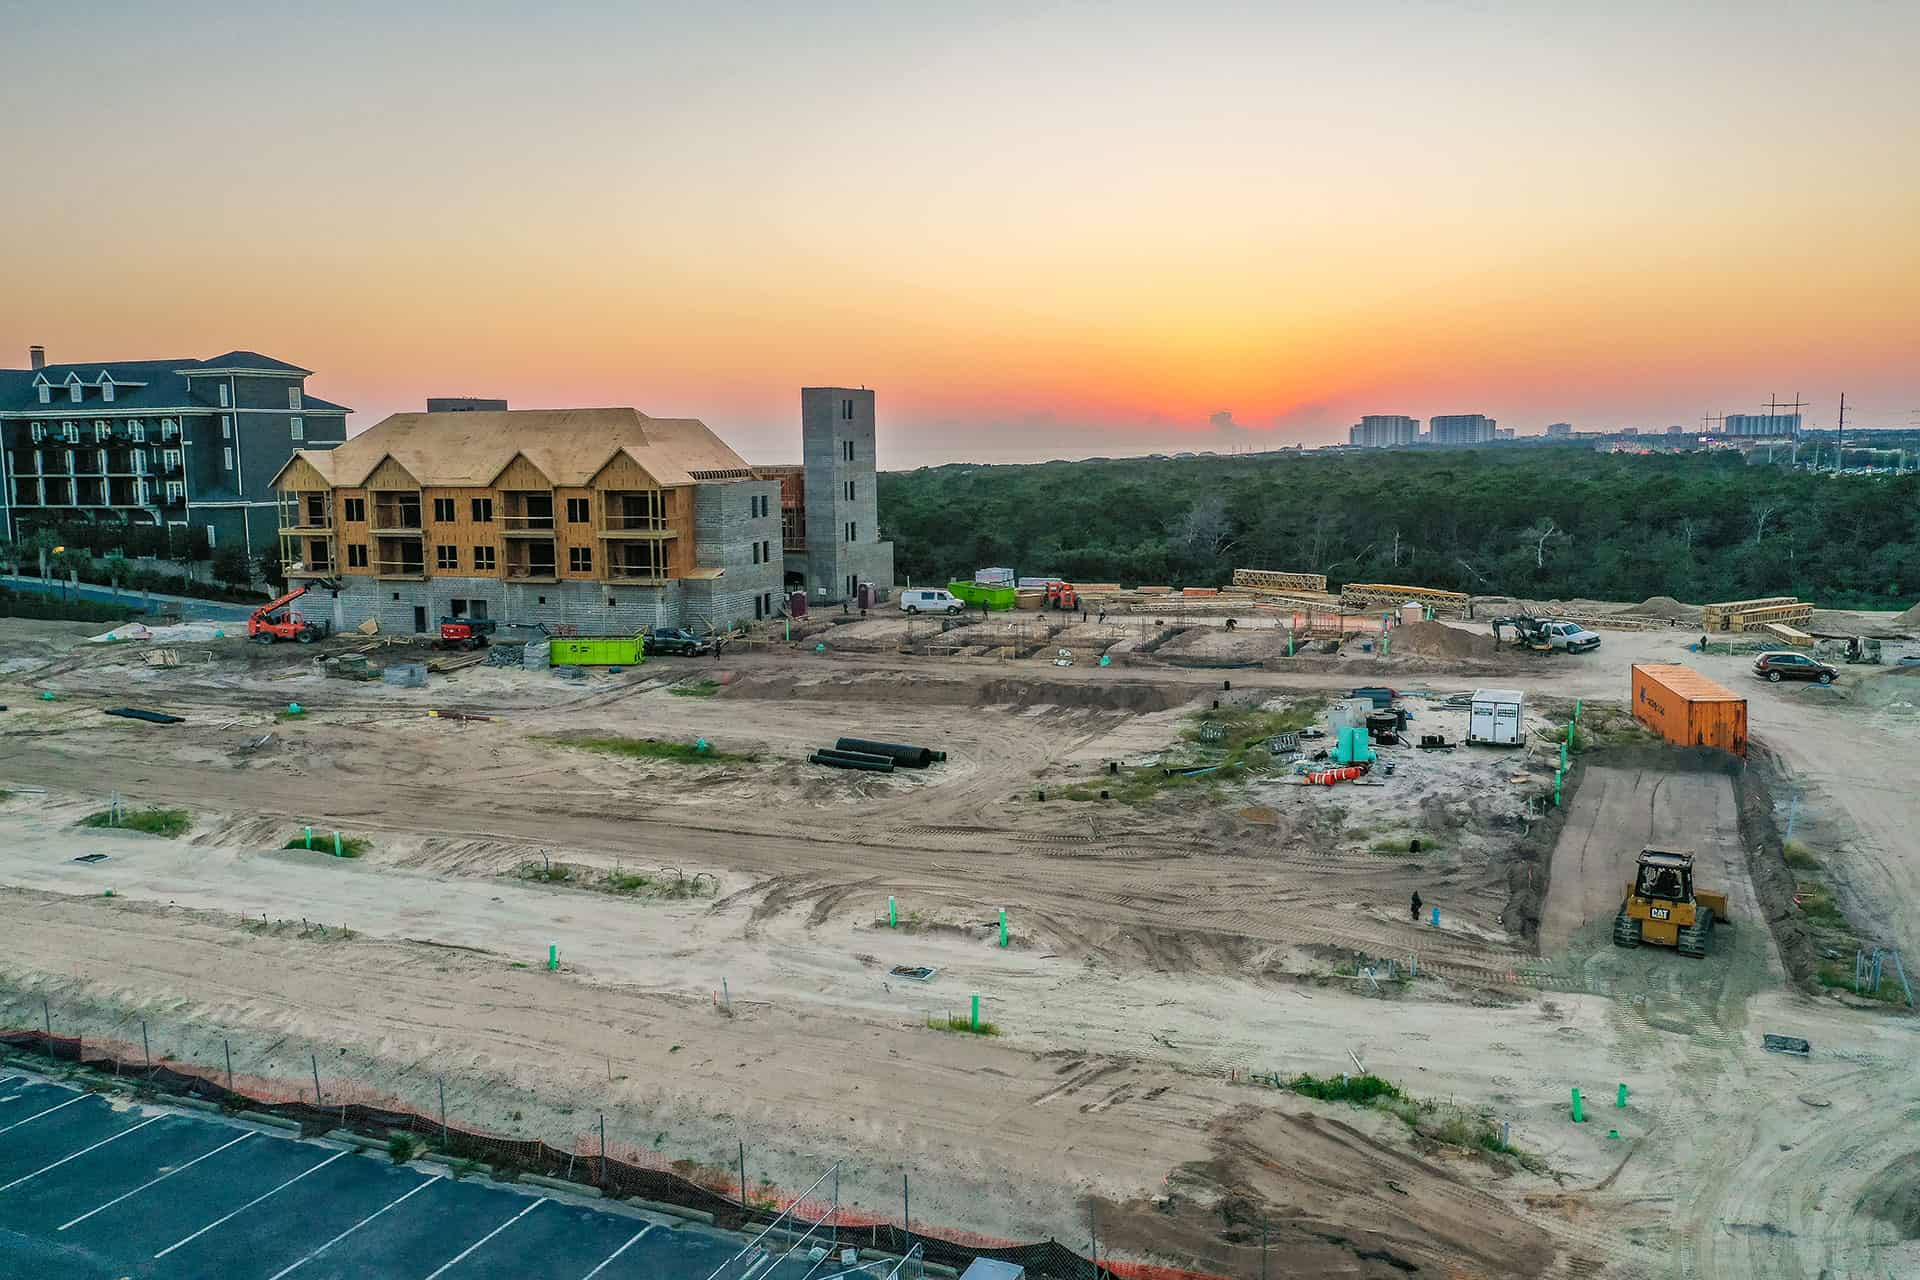 Parkside construction progress photo at dusk